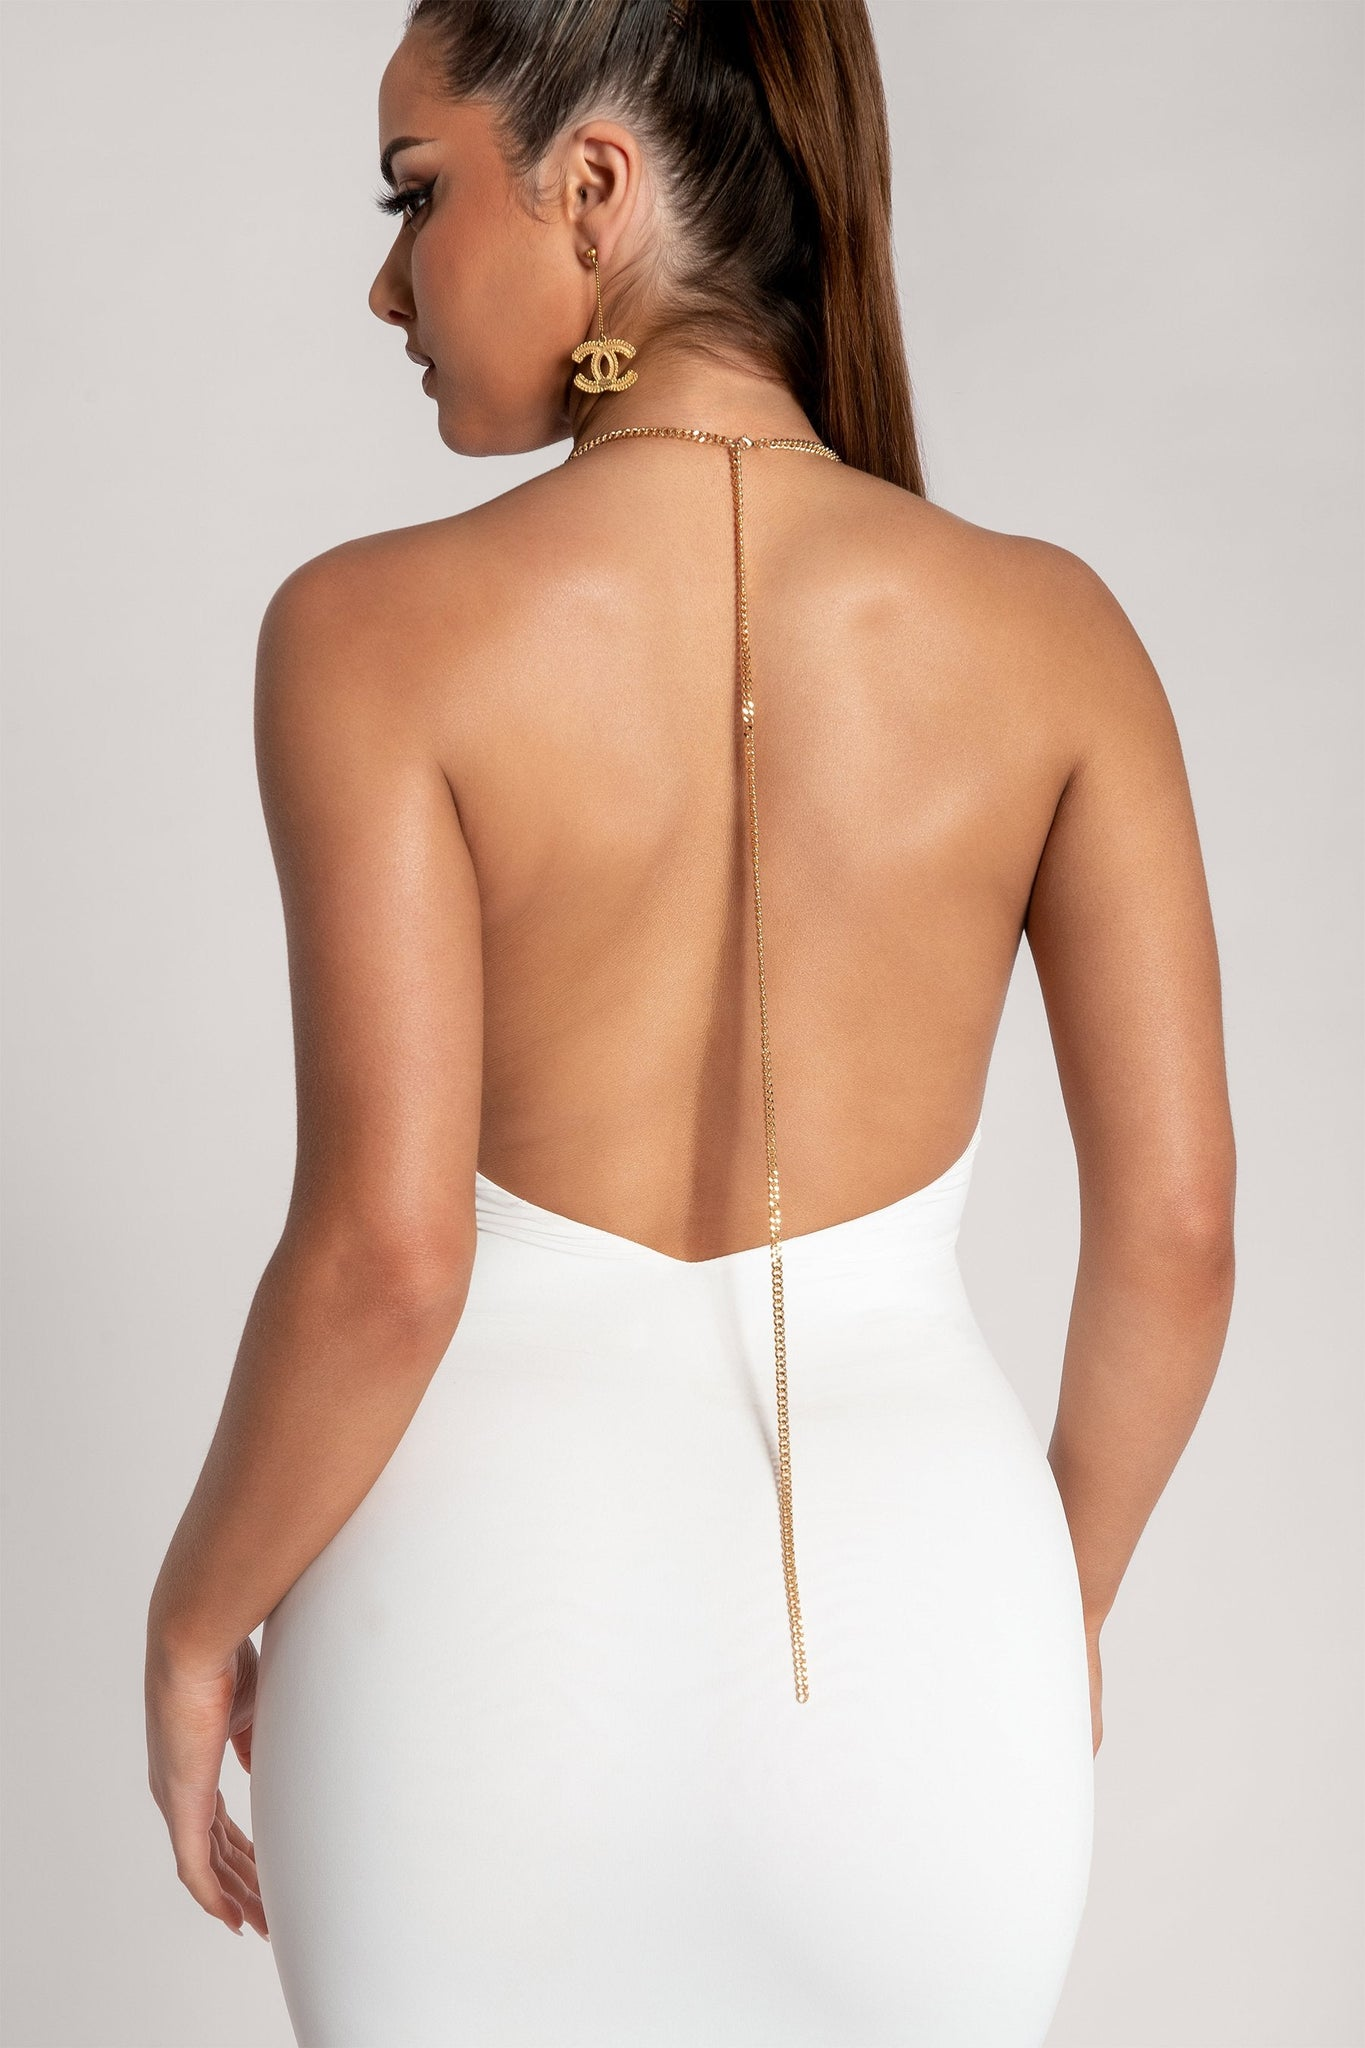 Nyx Plunge Halter Chain Strap Midi Dress - White - MESHKI